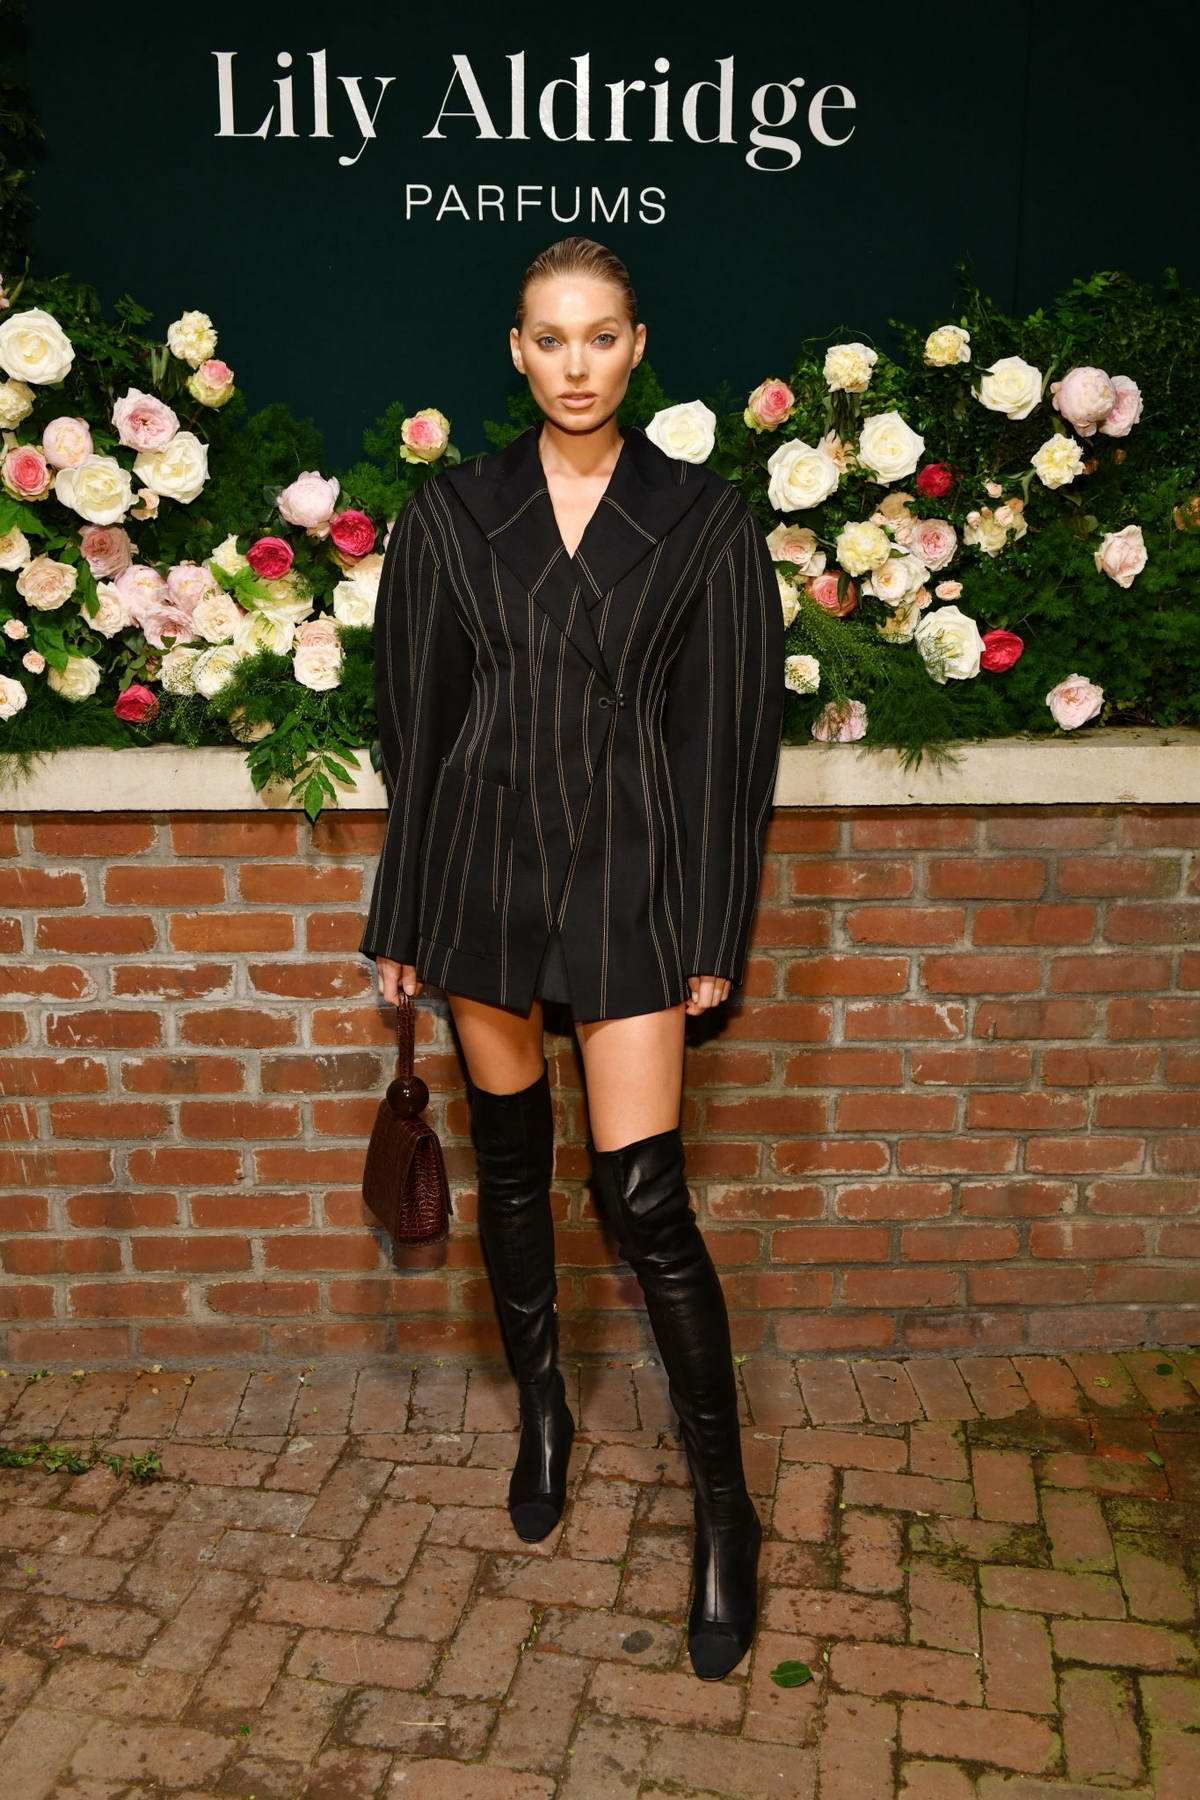 Elsa Hosk attends the 'Lily Aldridge parfums' launch event at The Bowery Terrace in New York City